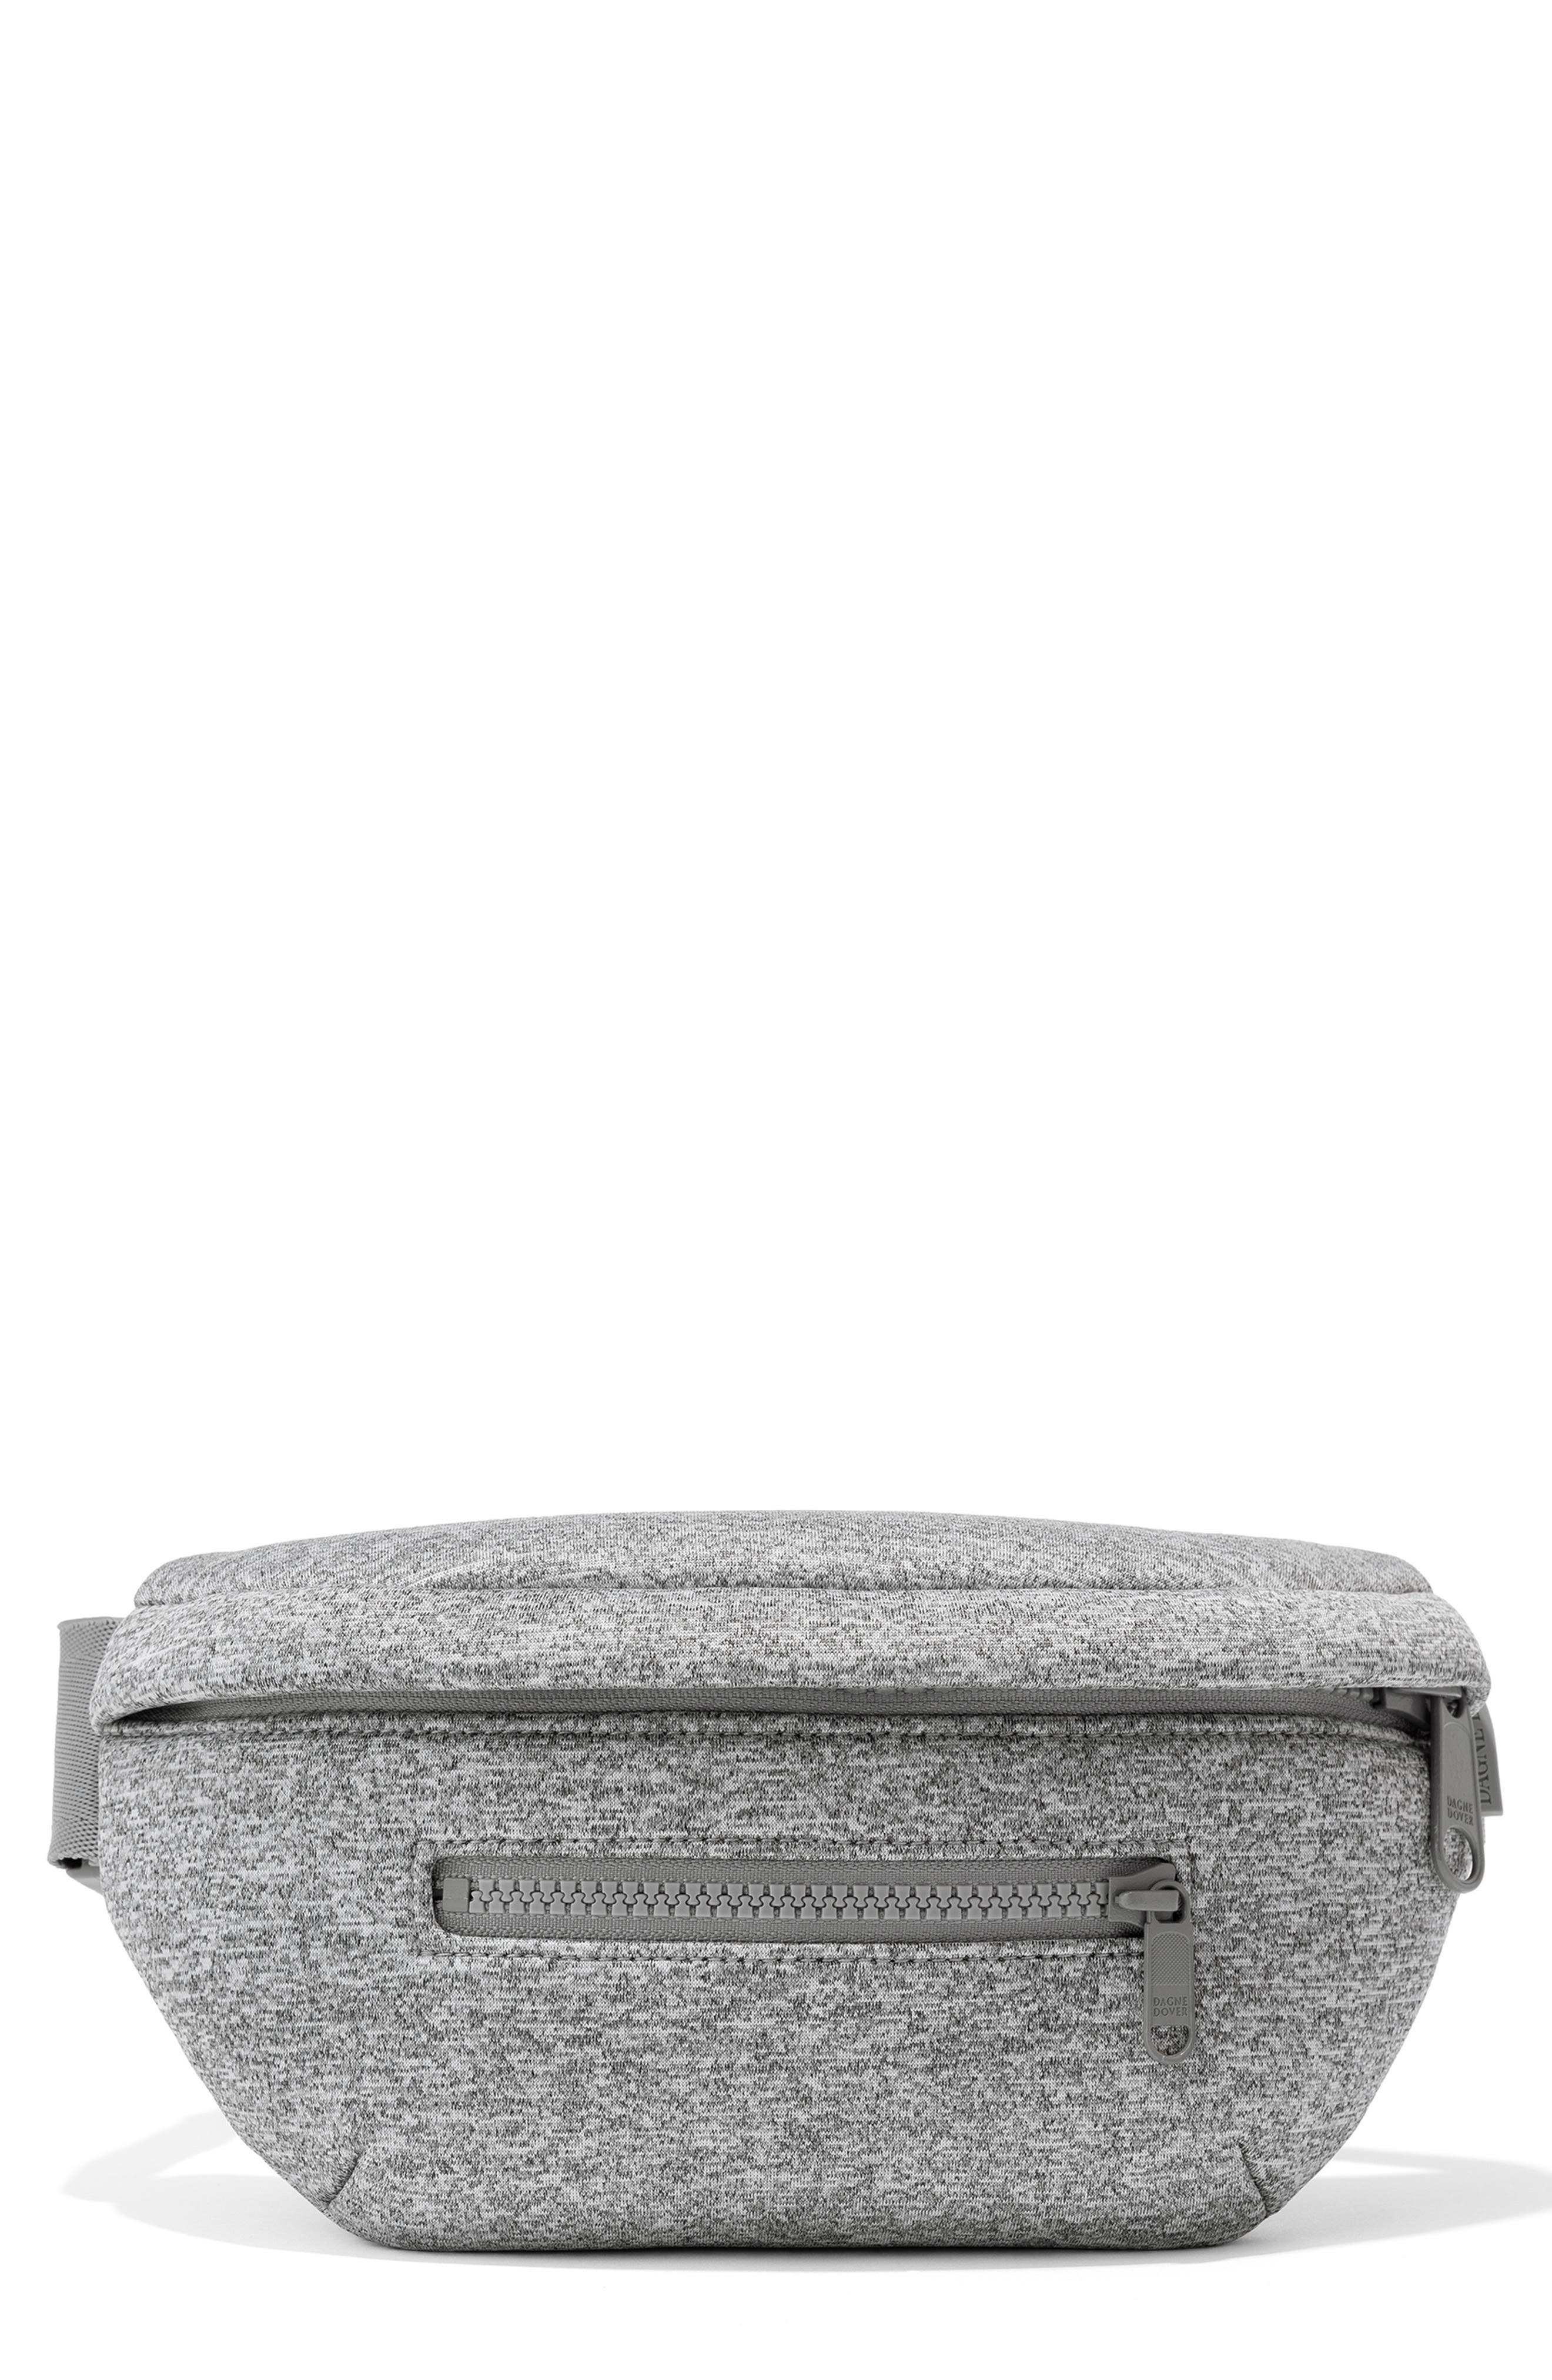 Ace Neoprene Fanny Pack,                             Main thumbnail 1, color,                             HEATHER GREY